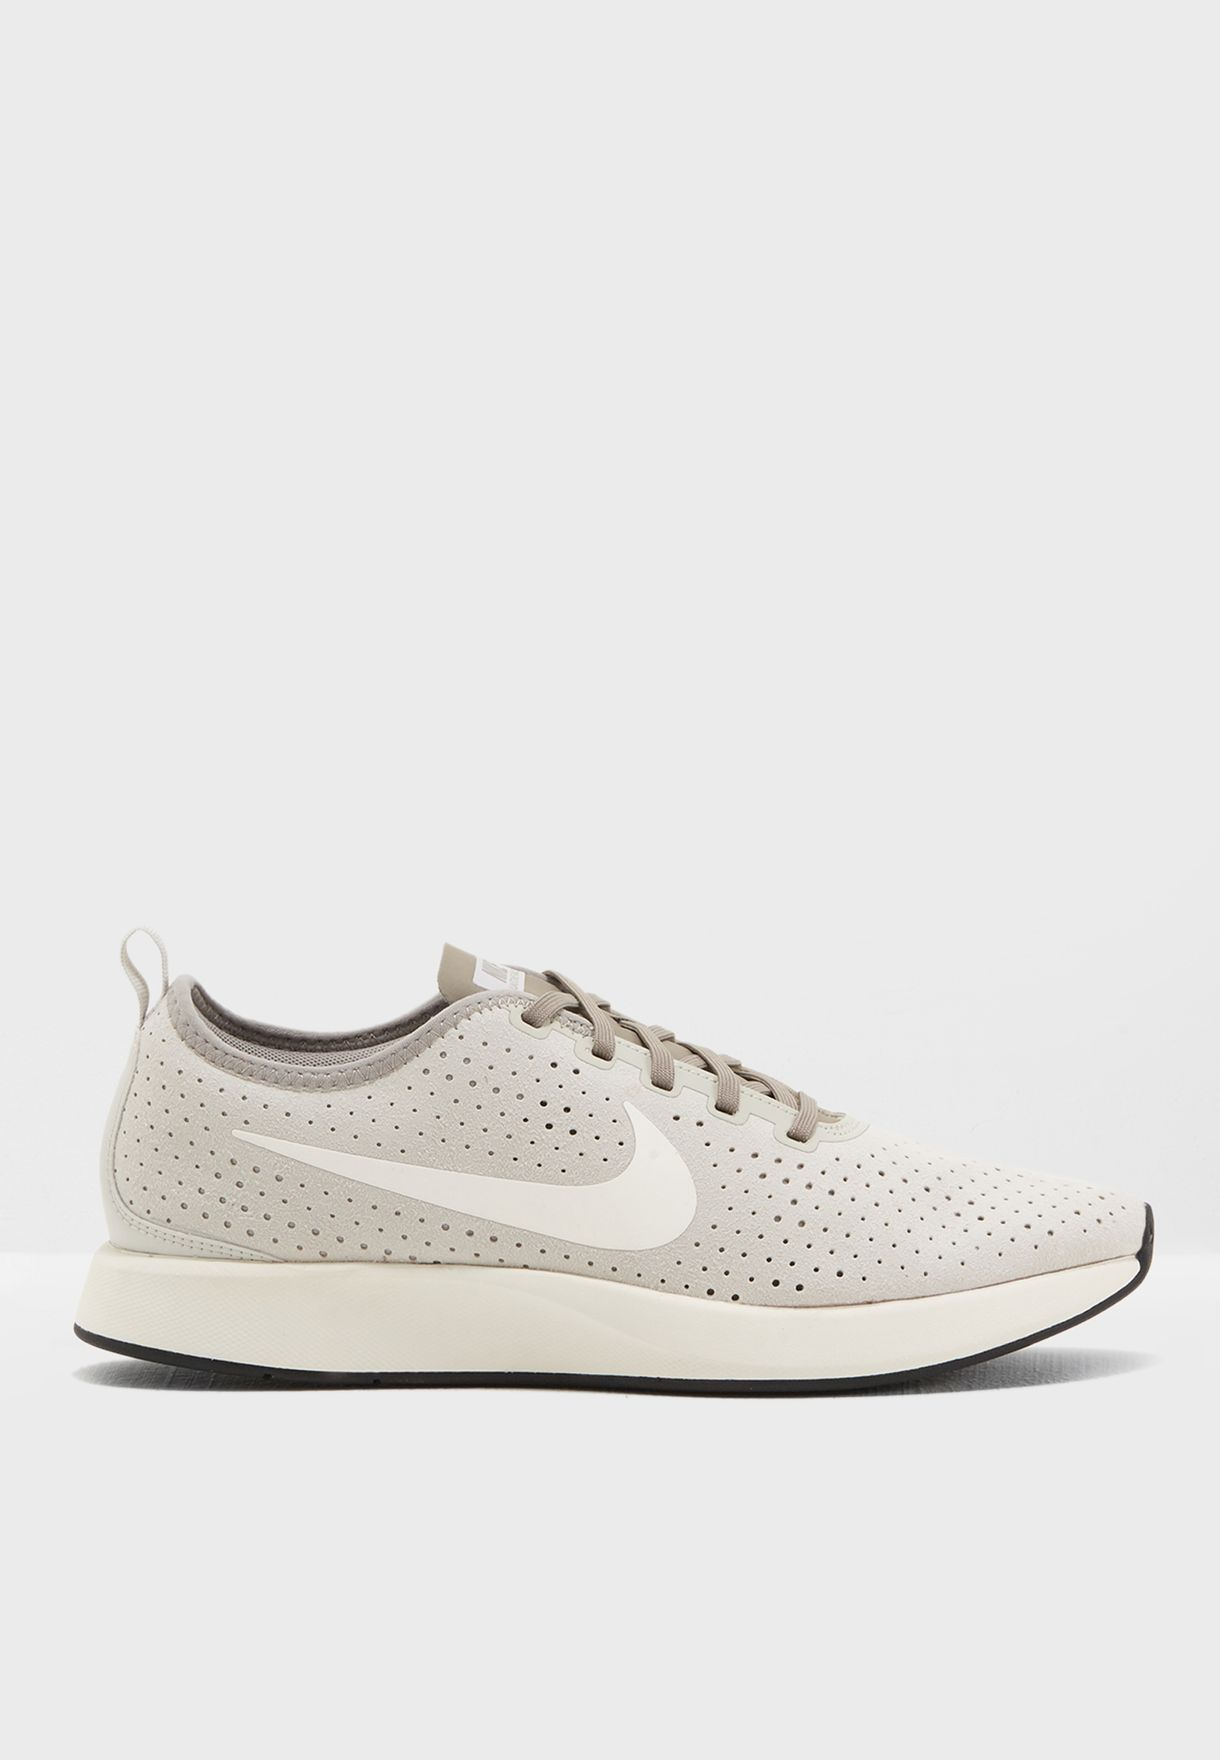 Shop Shop Shop Nike beige Dualtone Racer PRM 924448 005 for hombres in UAE 229eec